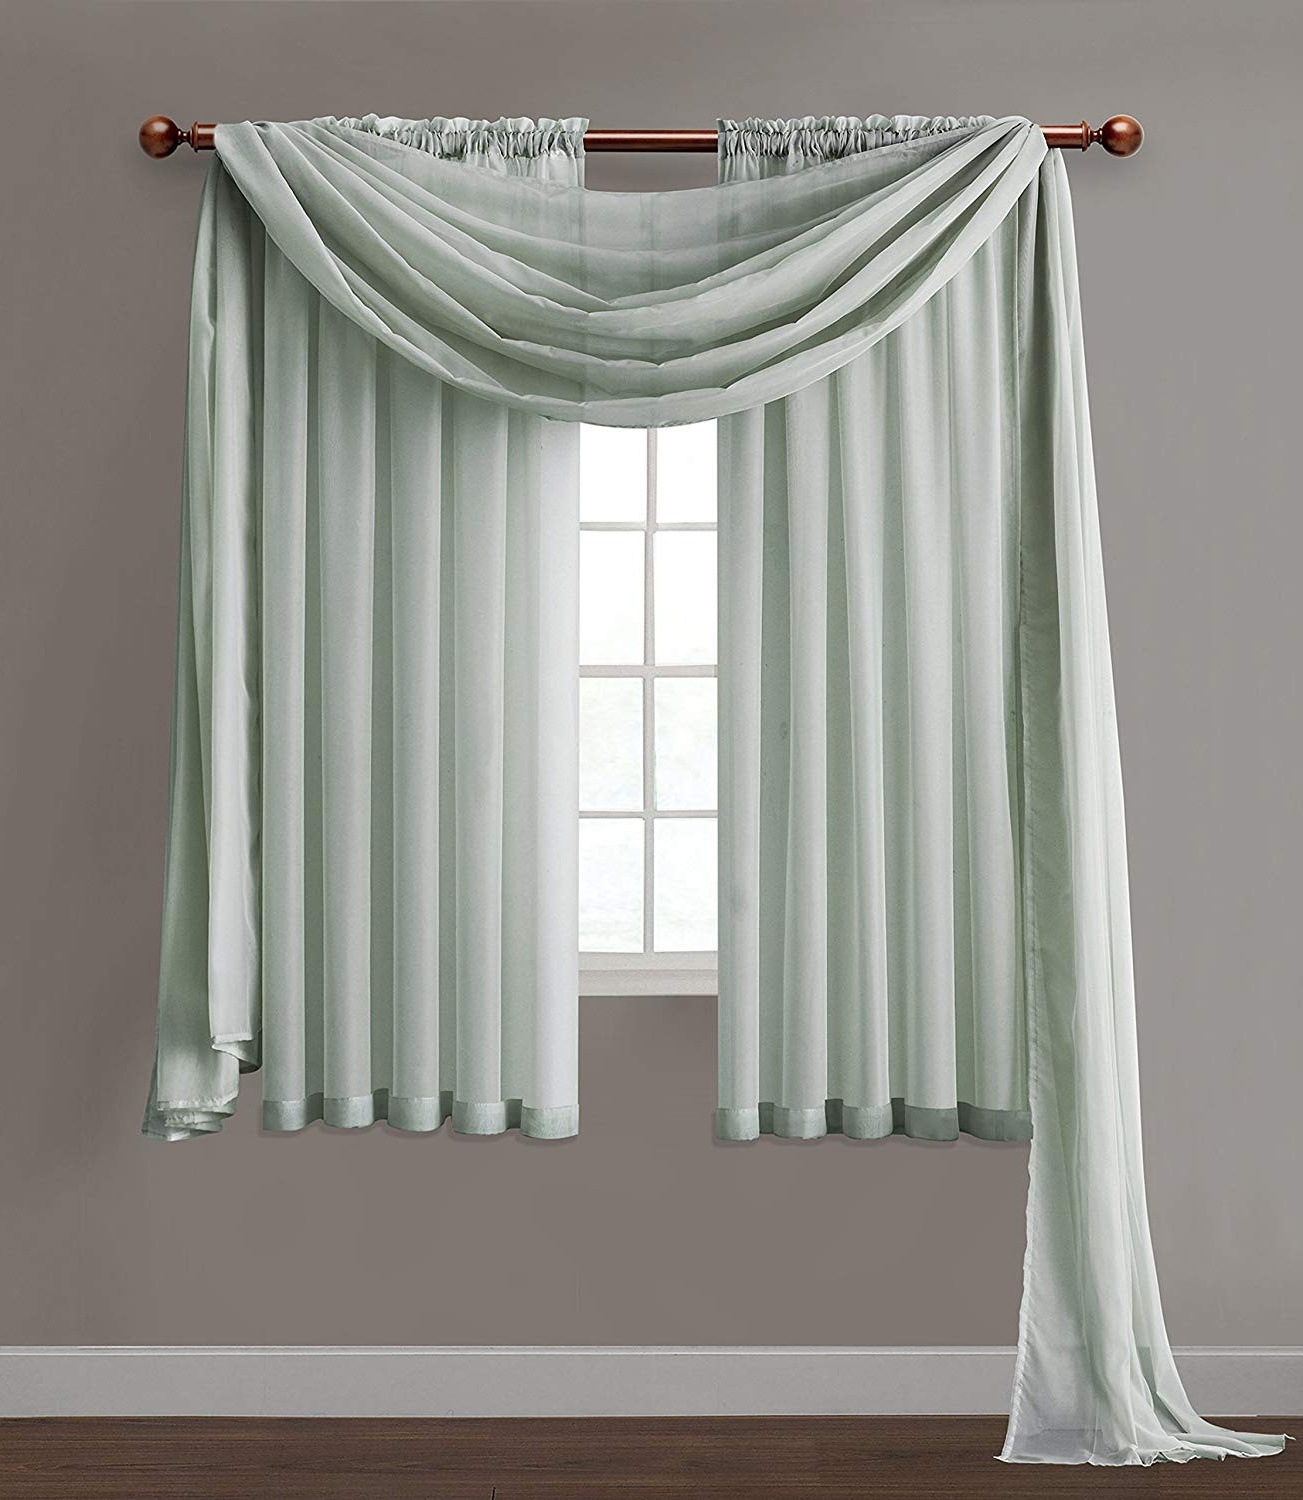 Well Known Vcny Inf Pnl 5595 In Wl Infinity Sheer Panel, 5595 Inch, Wedgewood Blue For Infinity Sheer Rod Pocket Curtain Panels (View 18 of 20)